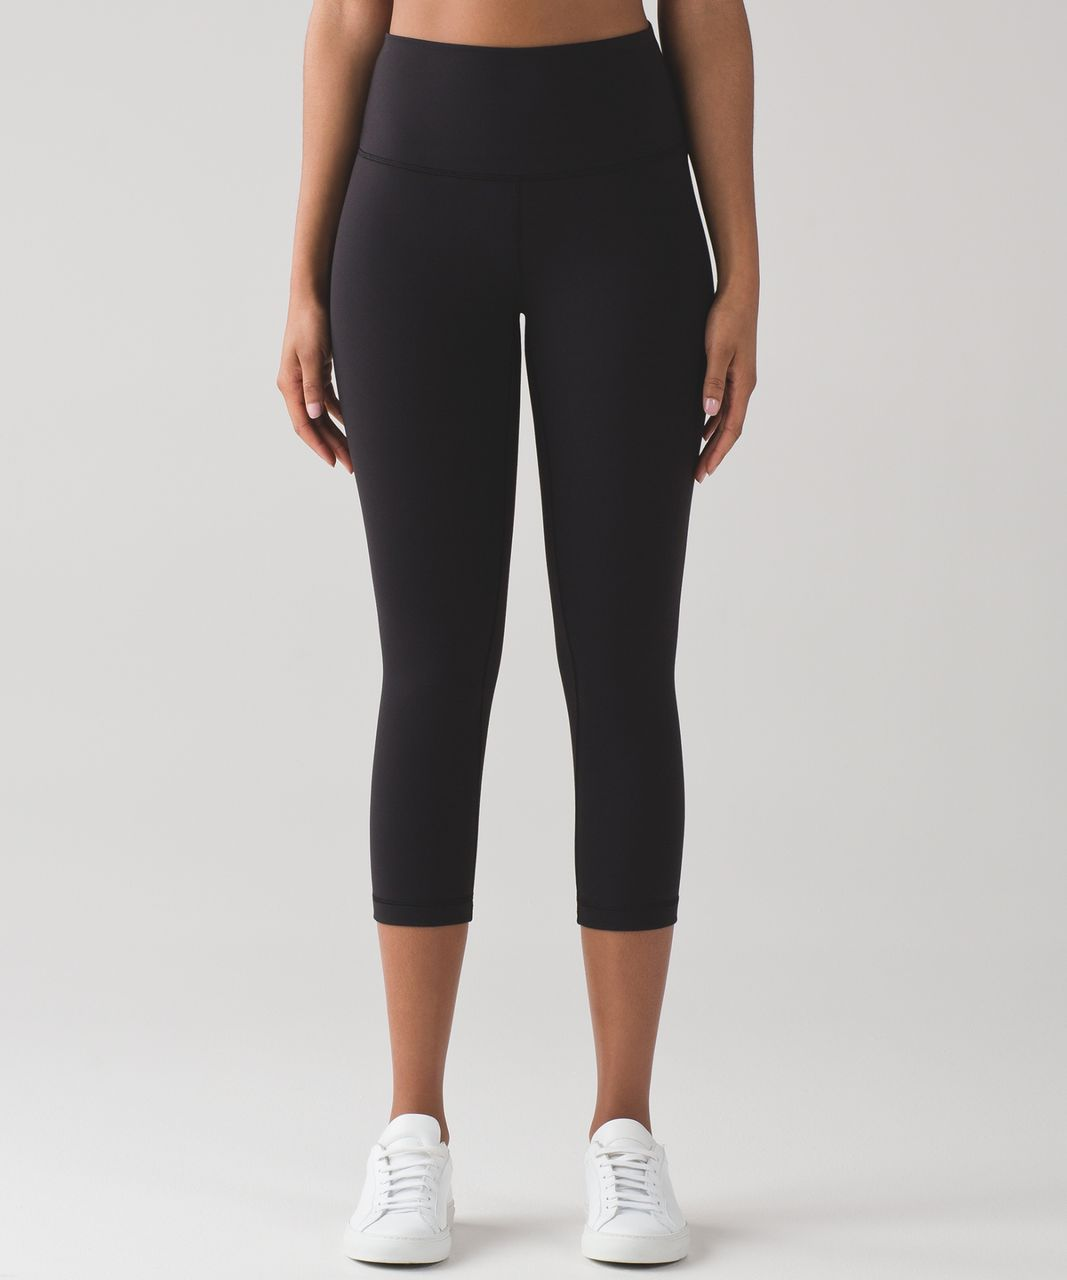 "Lululemon Wunder Under Crop (Hi-Rise) *Full-On Luon 21"" - Black (First Release)"